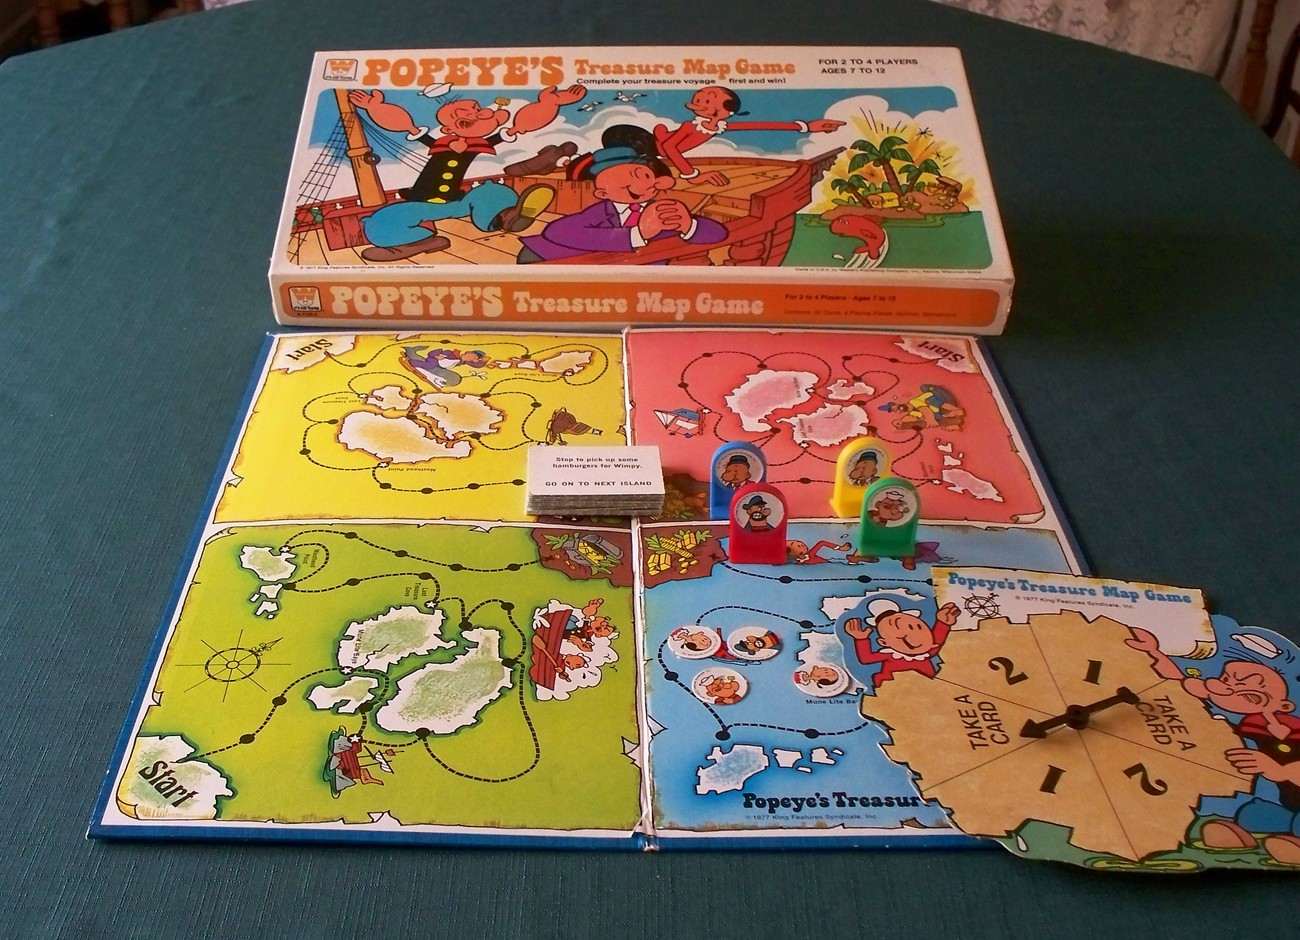 Popeye's Treasure Map Game by Whitman 1977 Complete